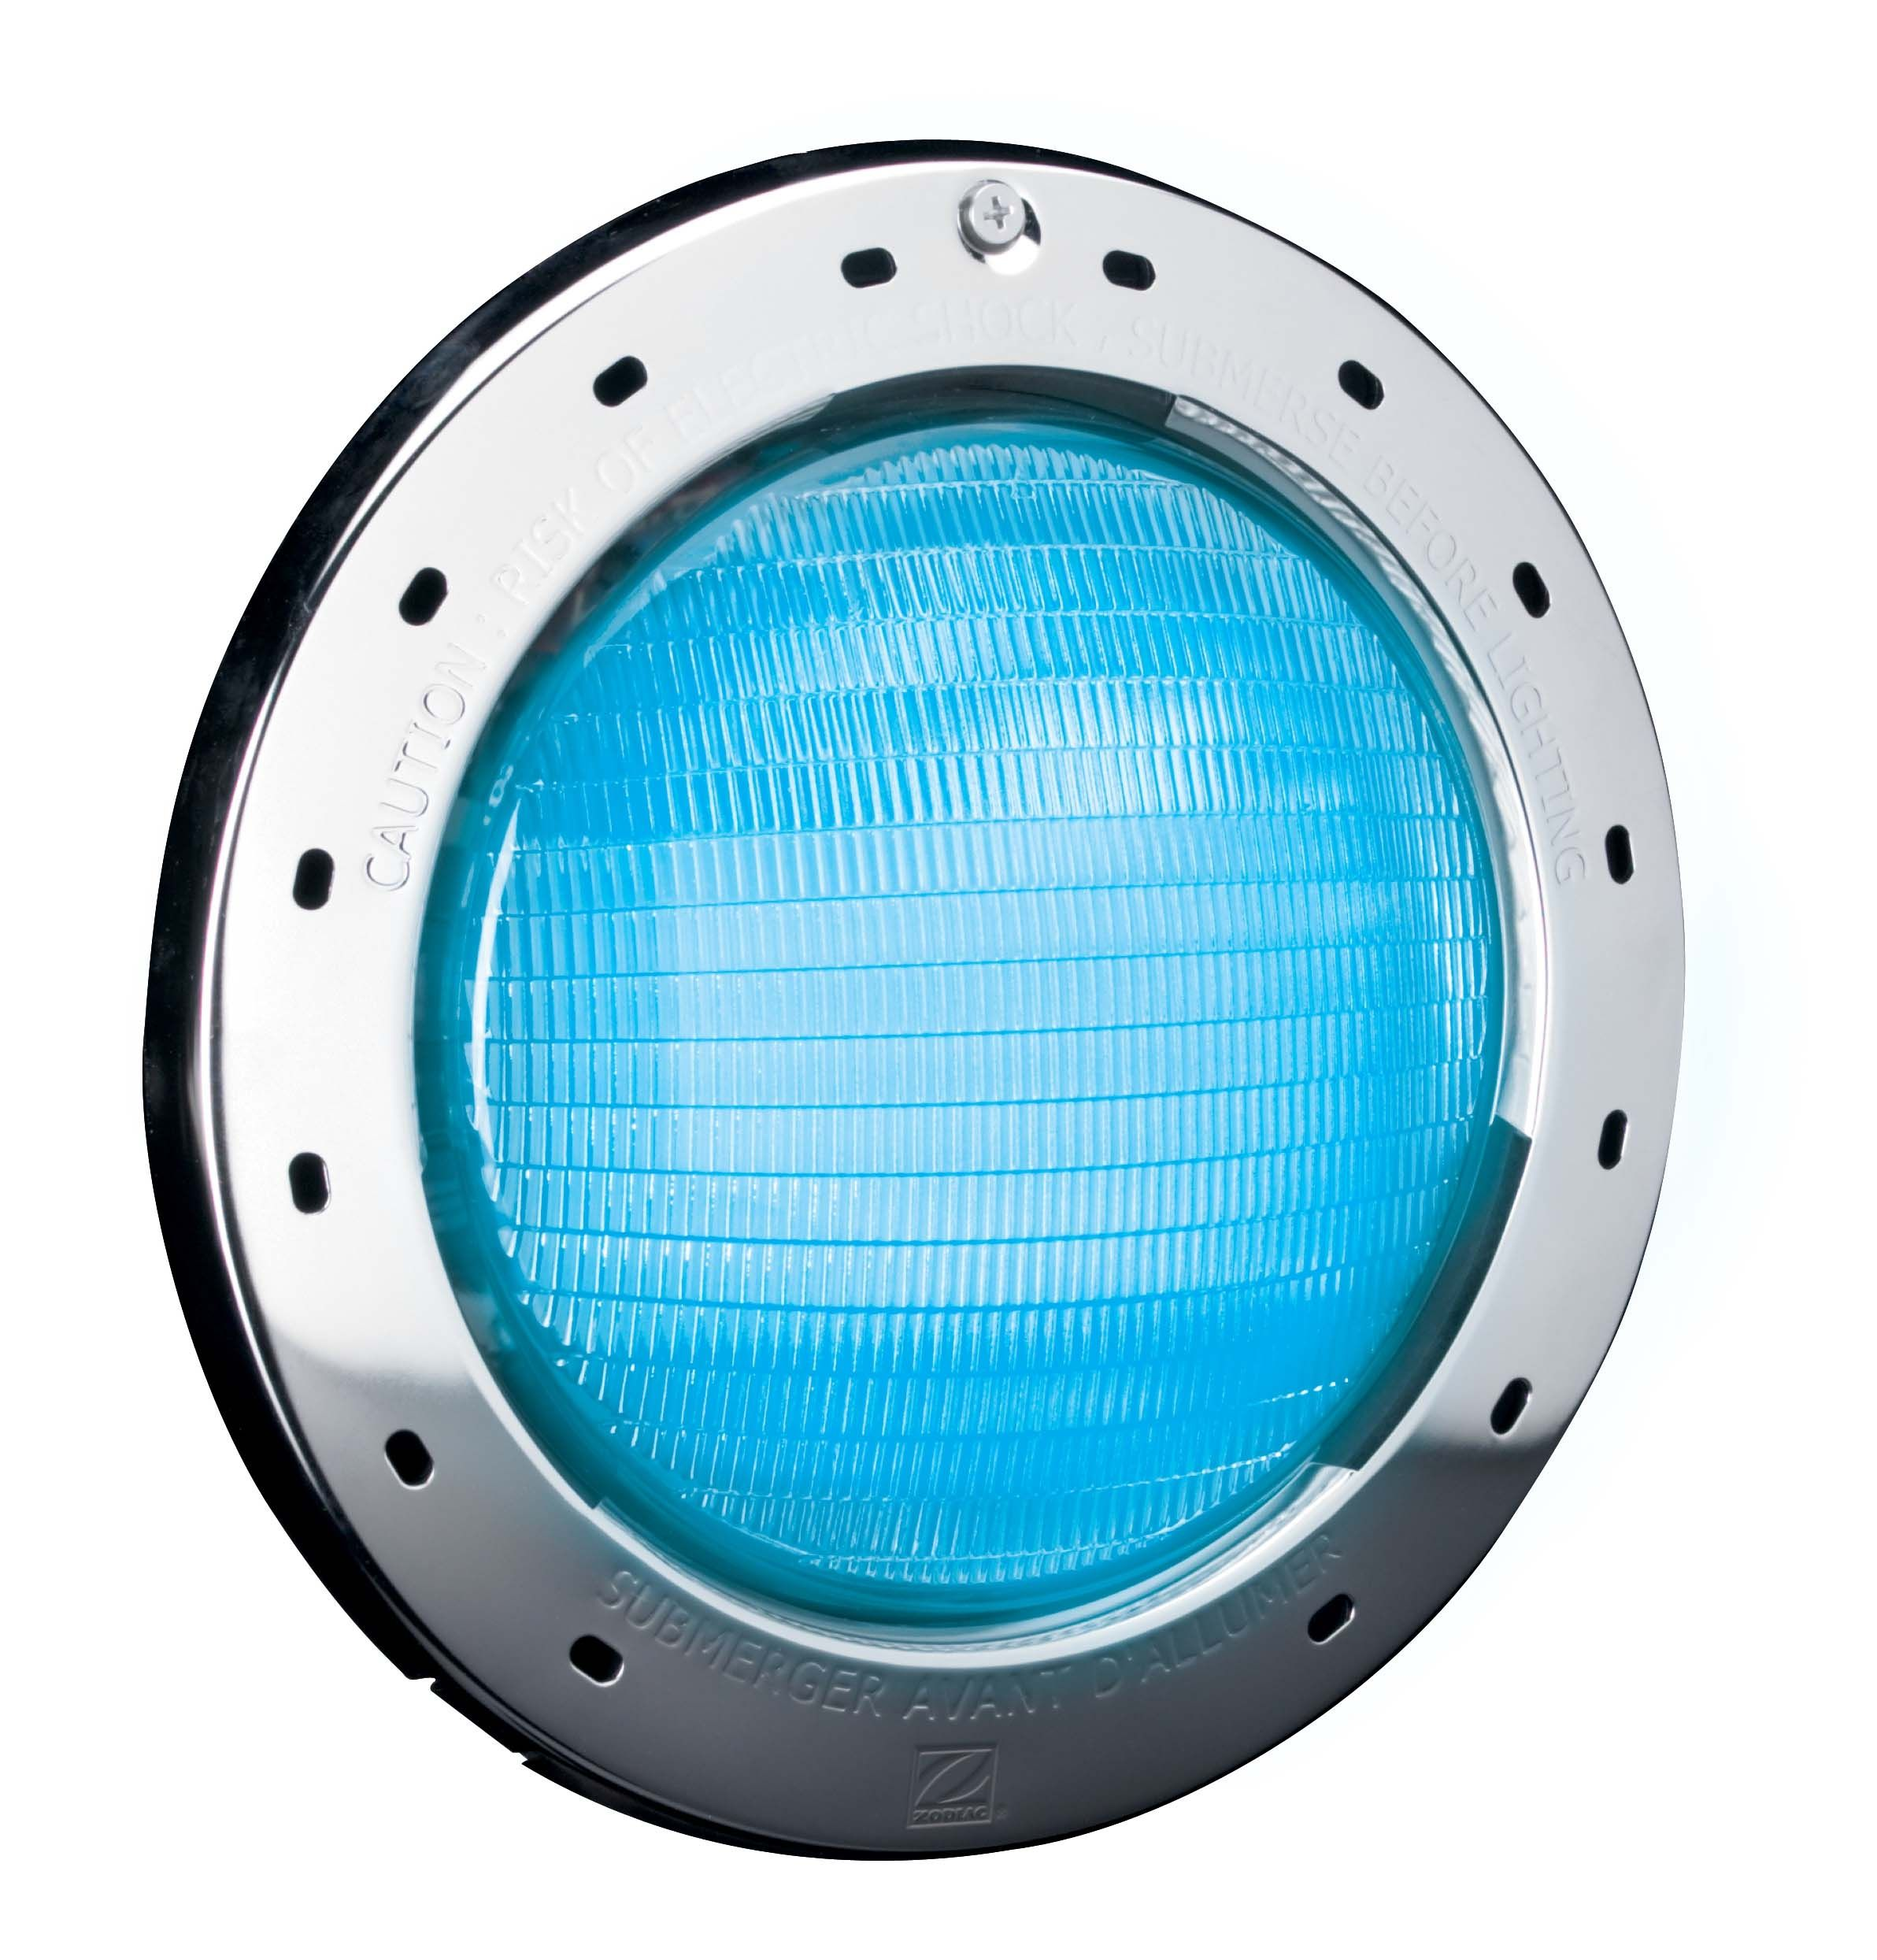 12 volt led pool light fixture httpscartclub pinterest 12 volt led pool light fixture arubaitofo Image collections